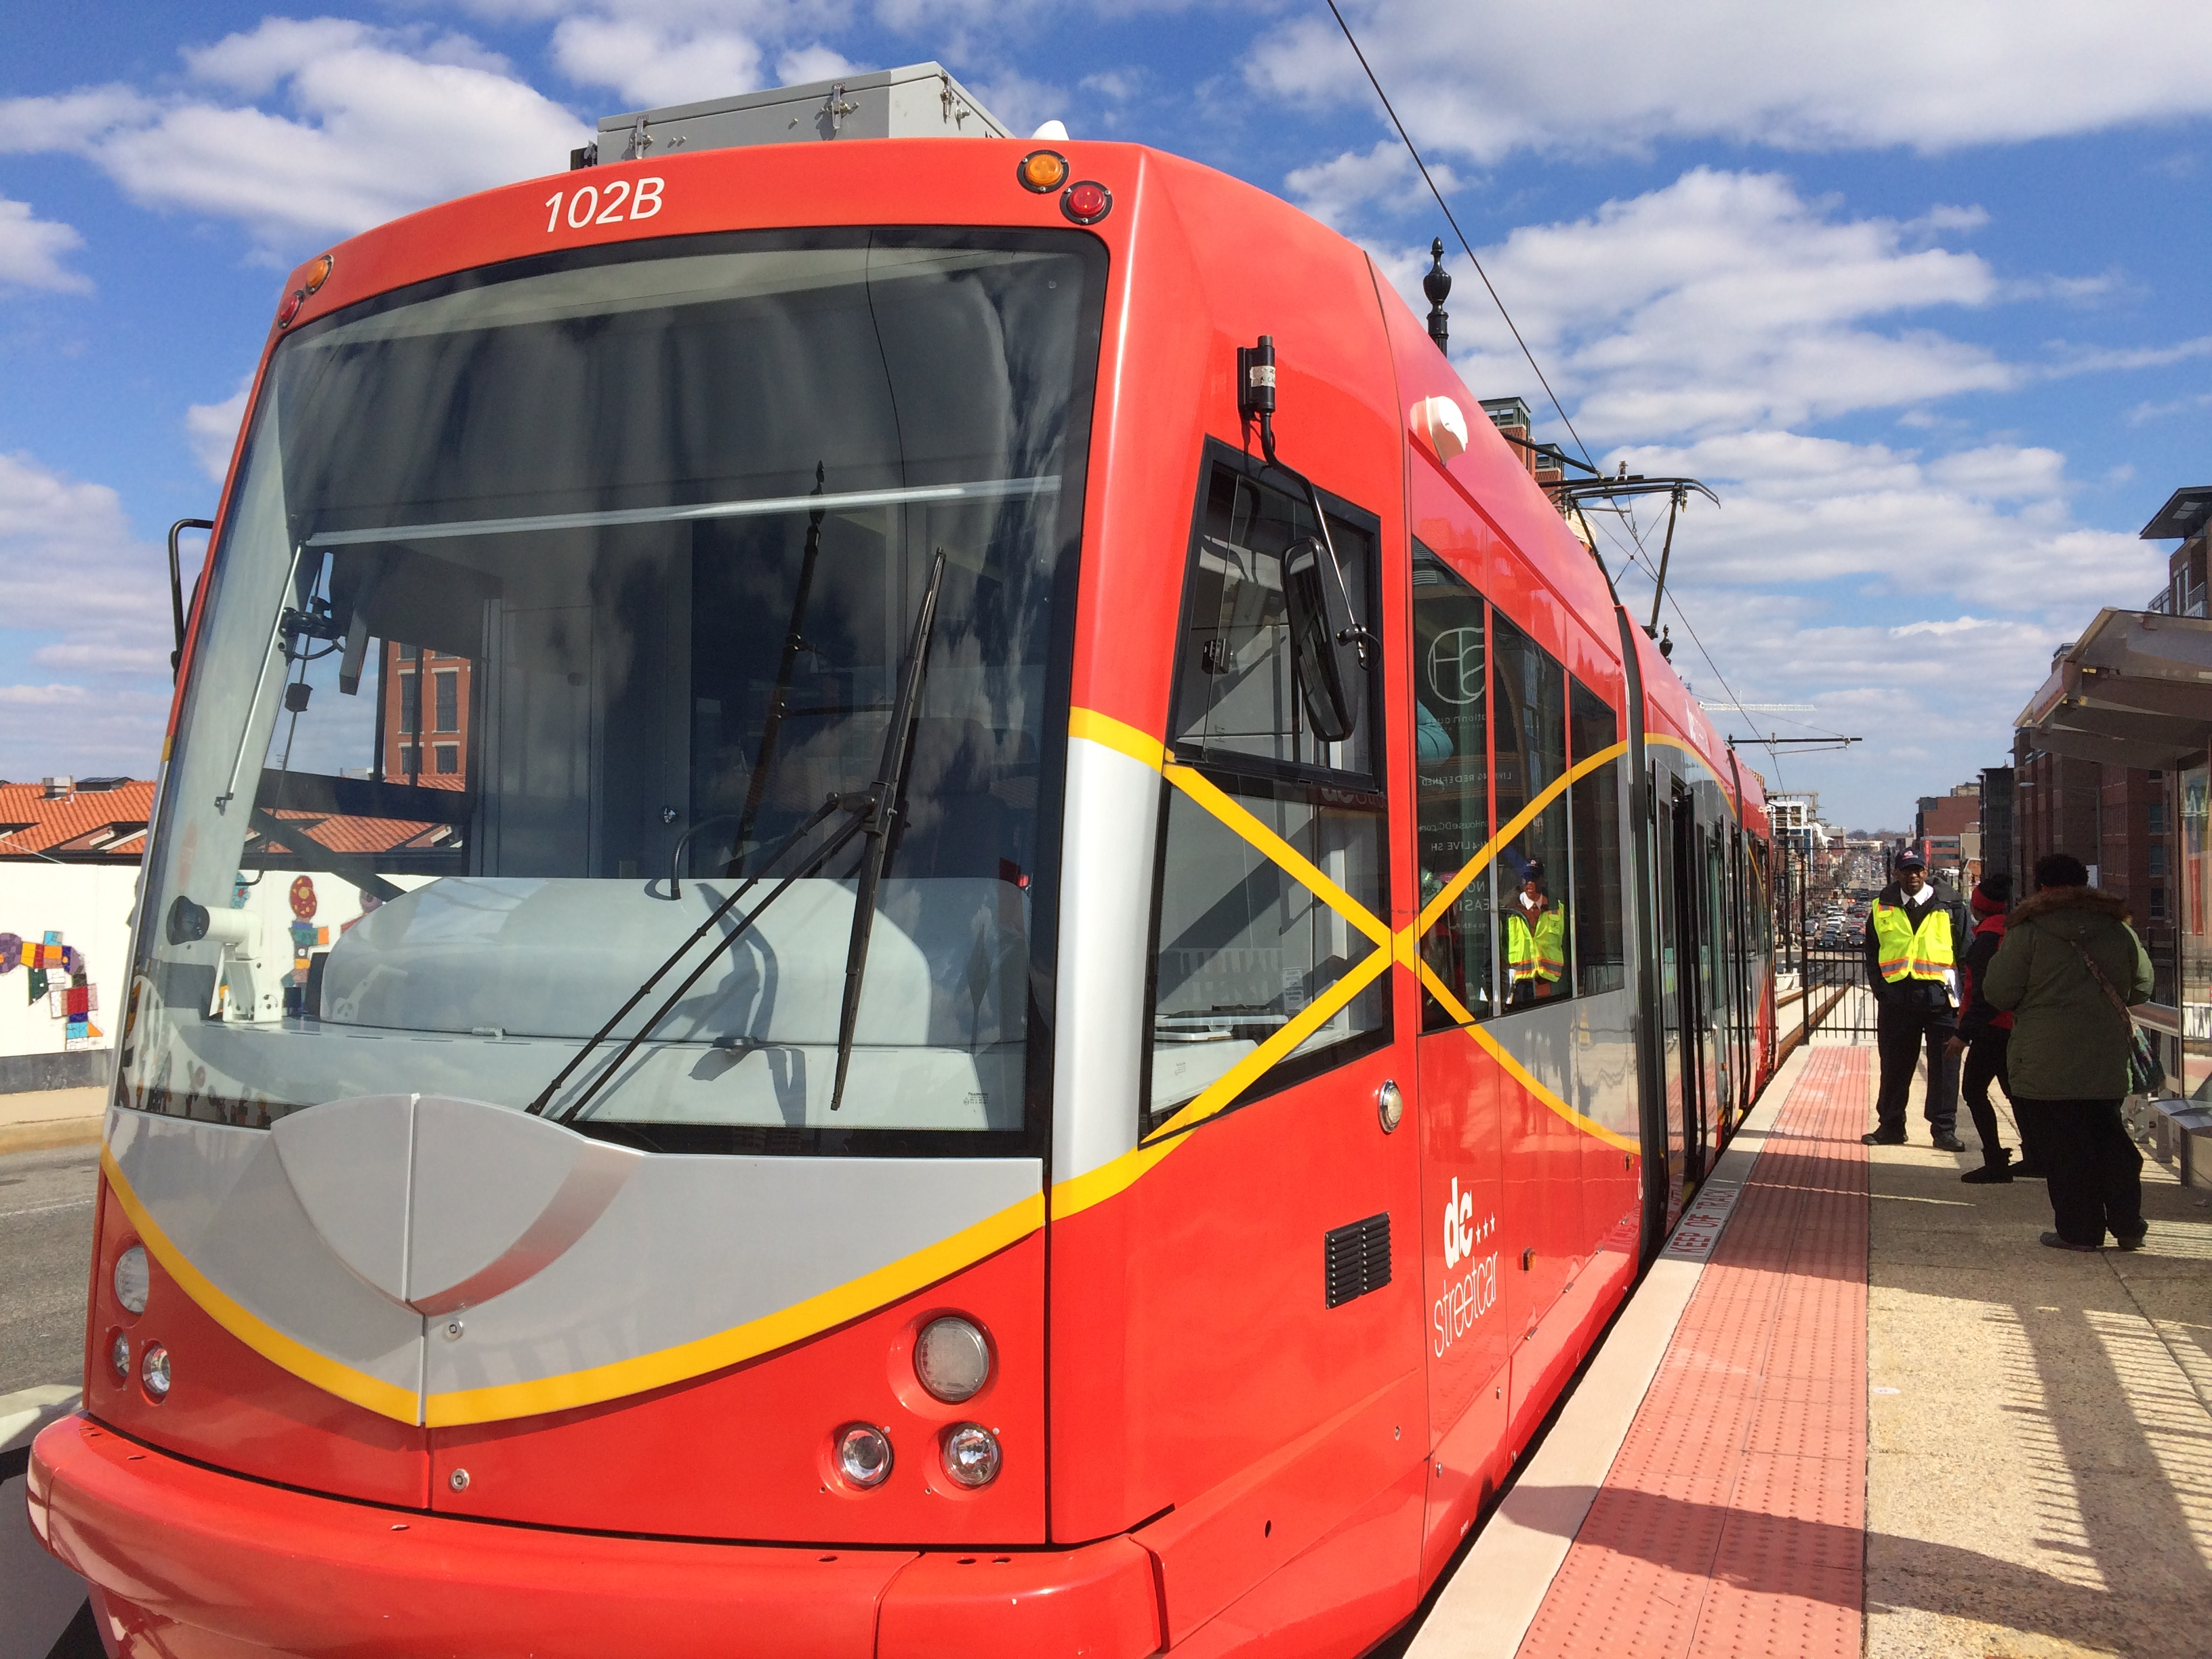 Finally: District's new streetcar opens with fanfare